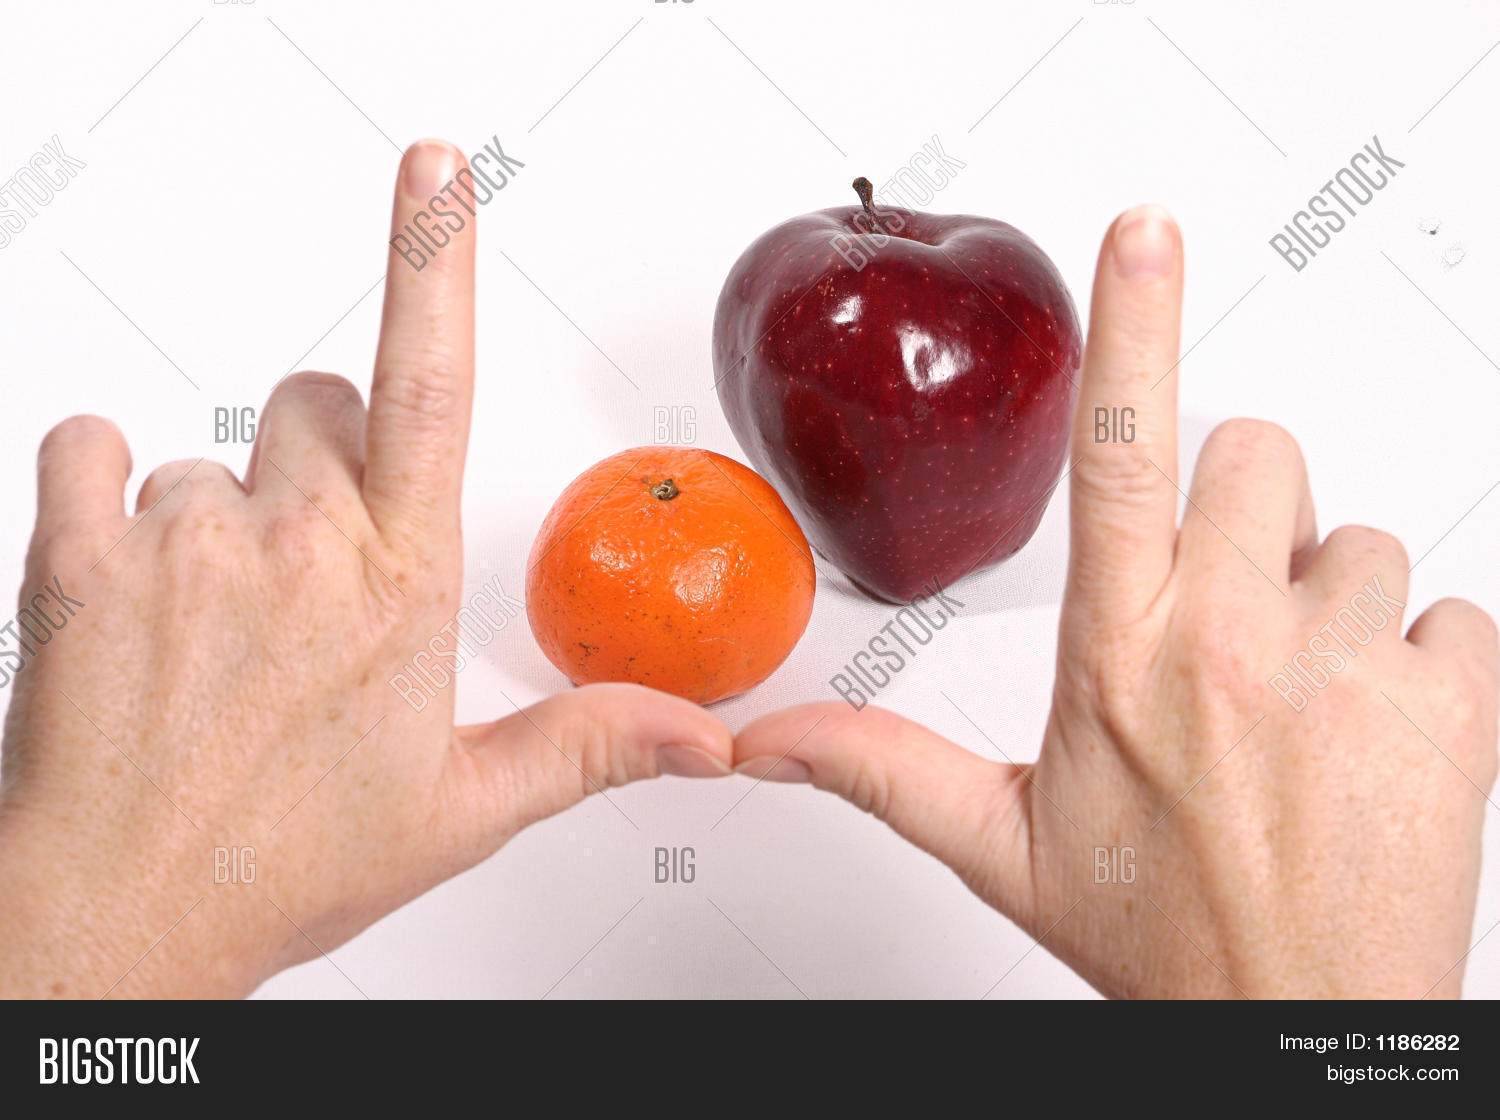 comparison essay on apples and oranges Comparison and contrast are  when considering apples and oranges, we would immediately  from a literary compare and contrast paper written.